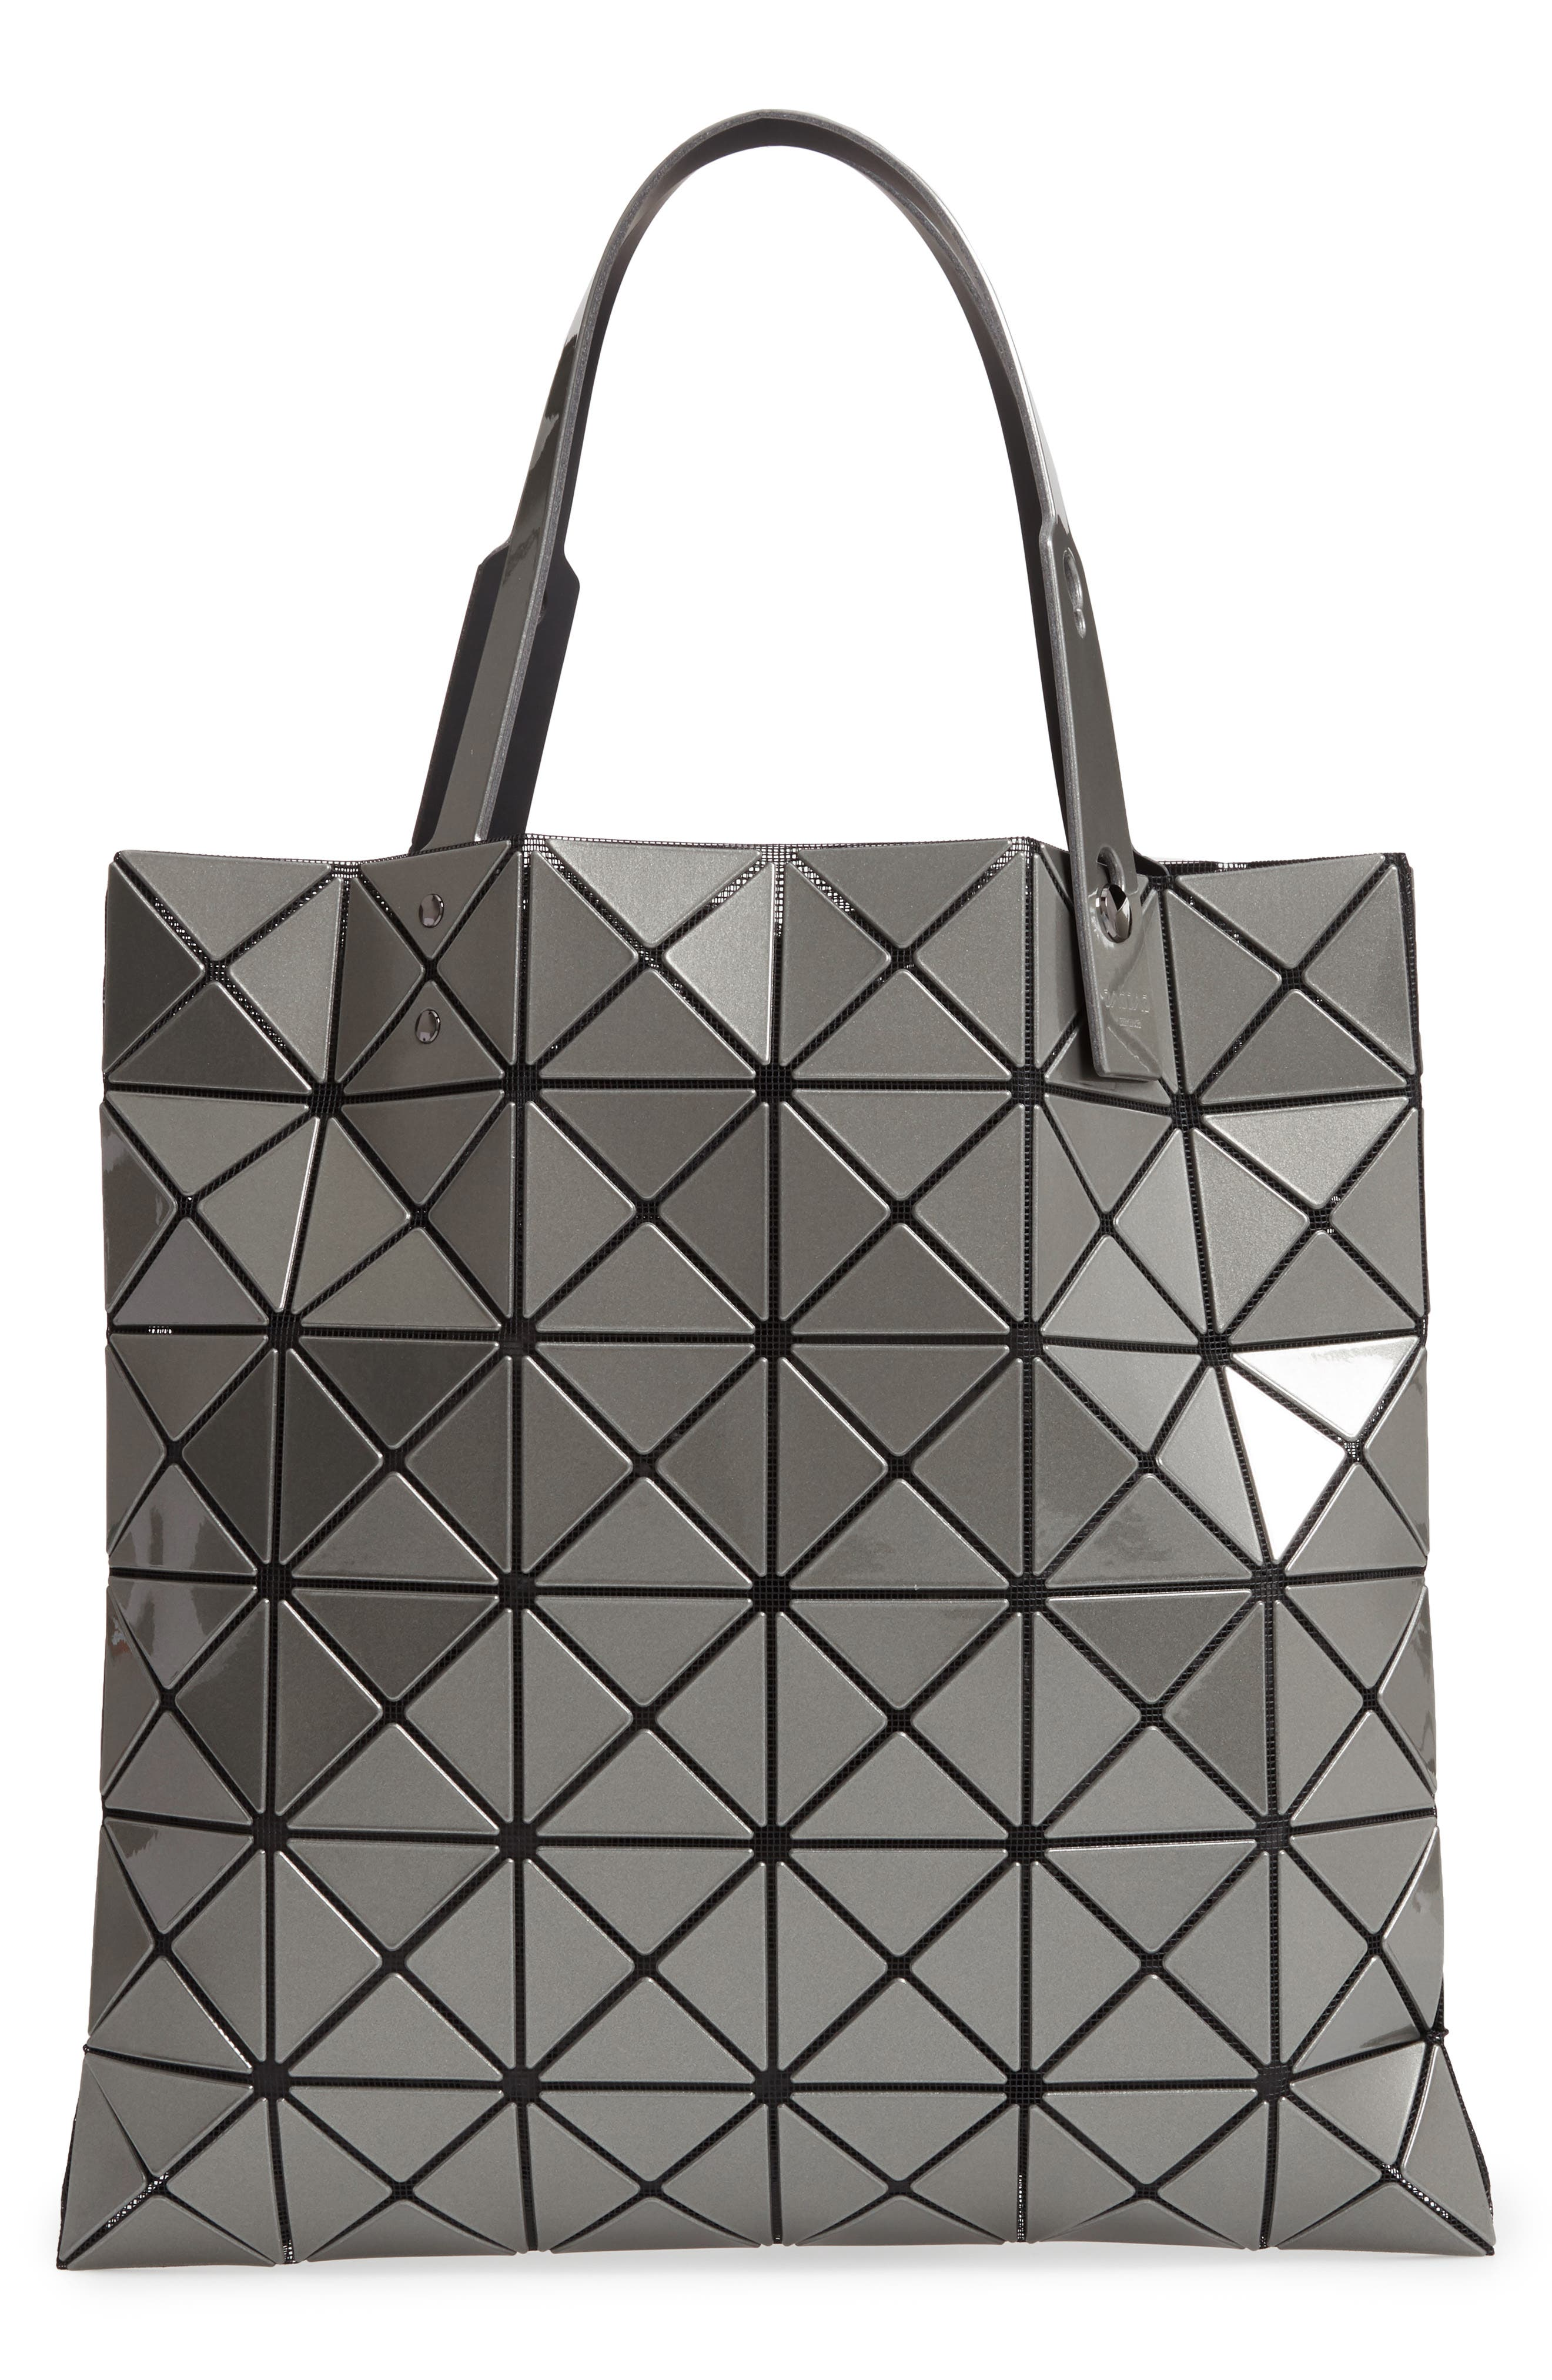 Lucent Metallic Tote Bag - Grey in Gunmetal